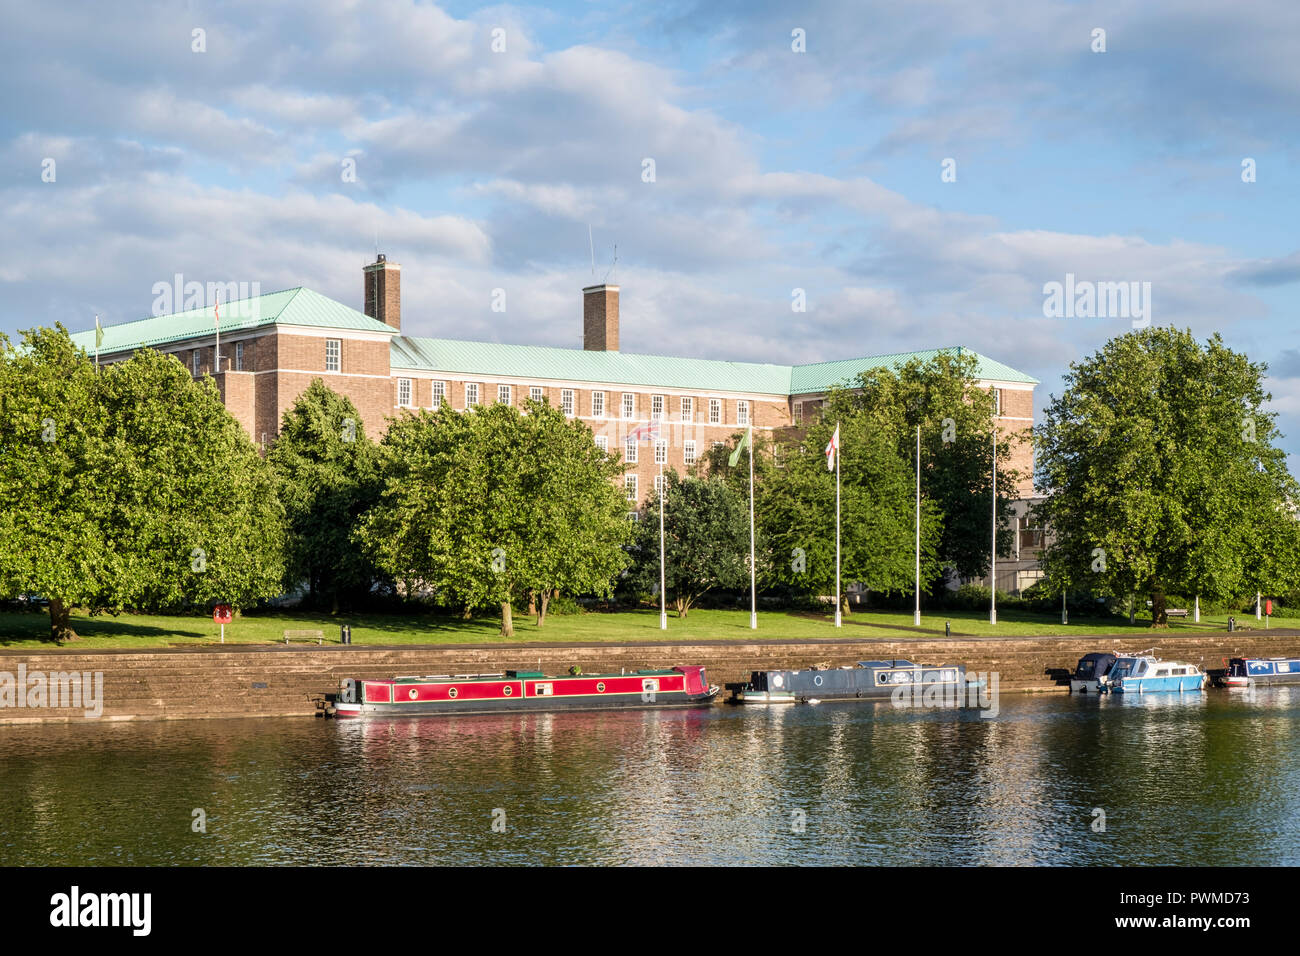 Nottinghamshire County Council offices and headquarters, County Hall, West Bridgford, Nottinghamshire, England, UK, seen from across the River Trent. - Stock Image